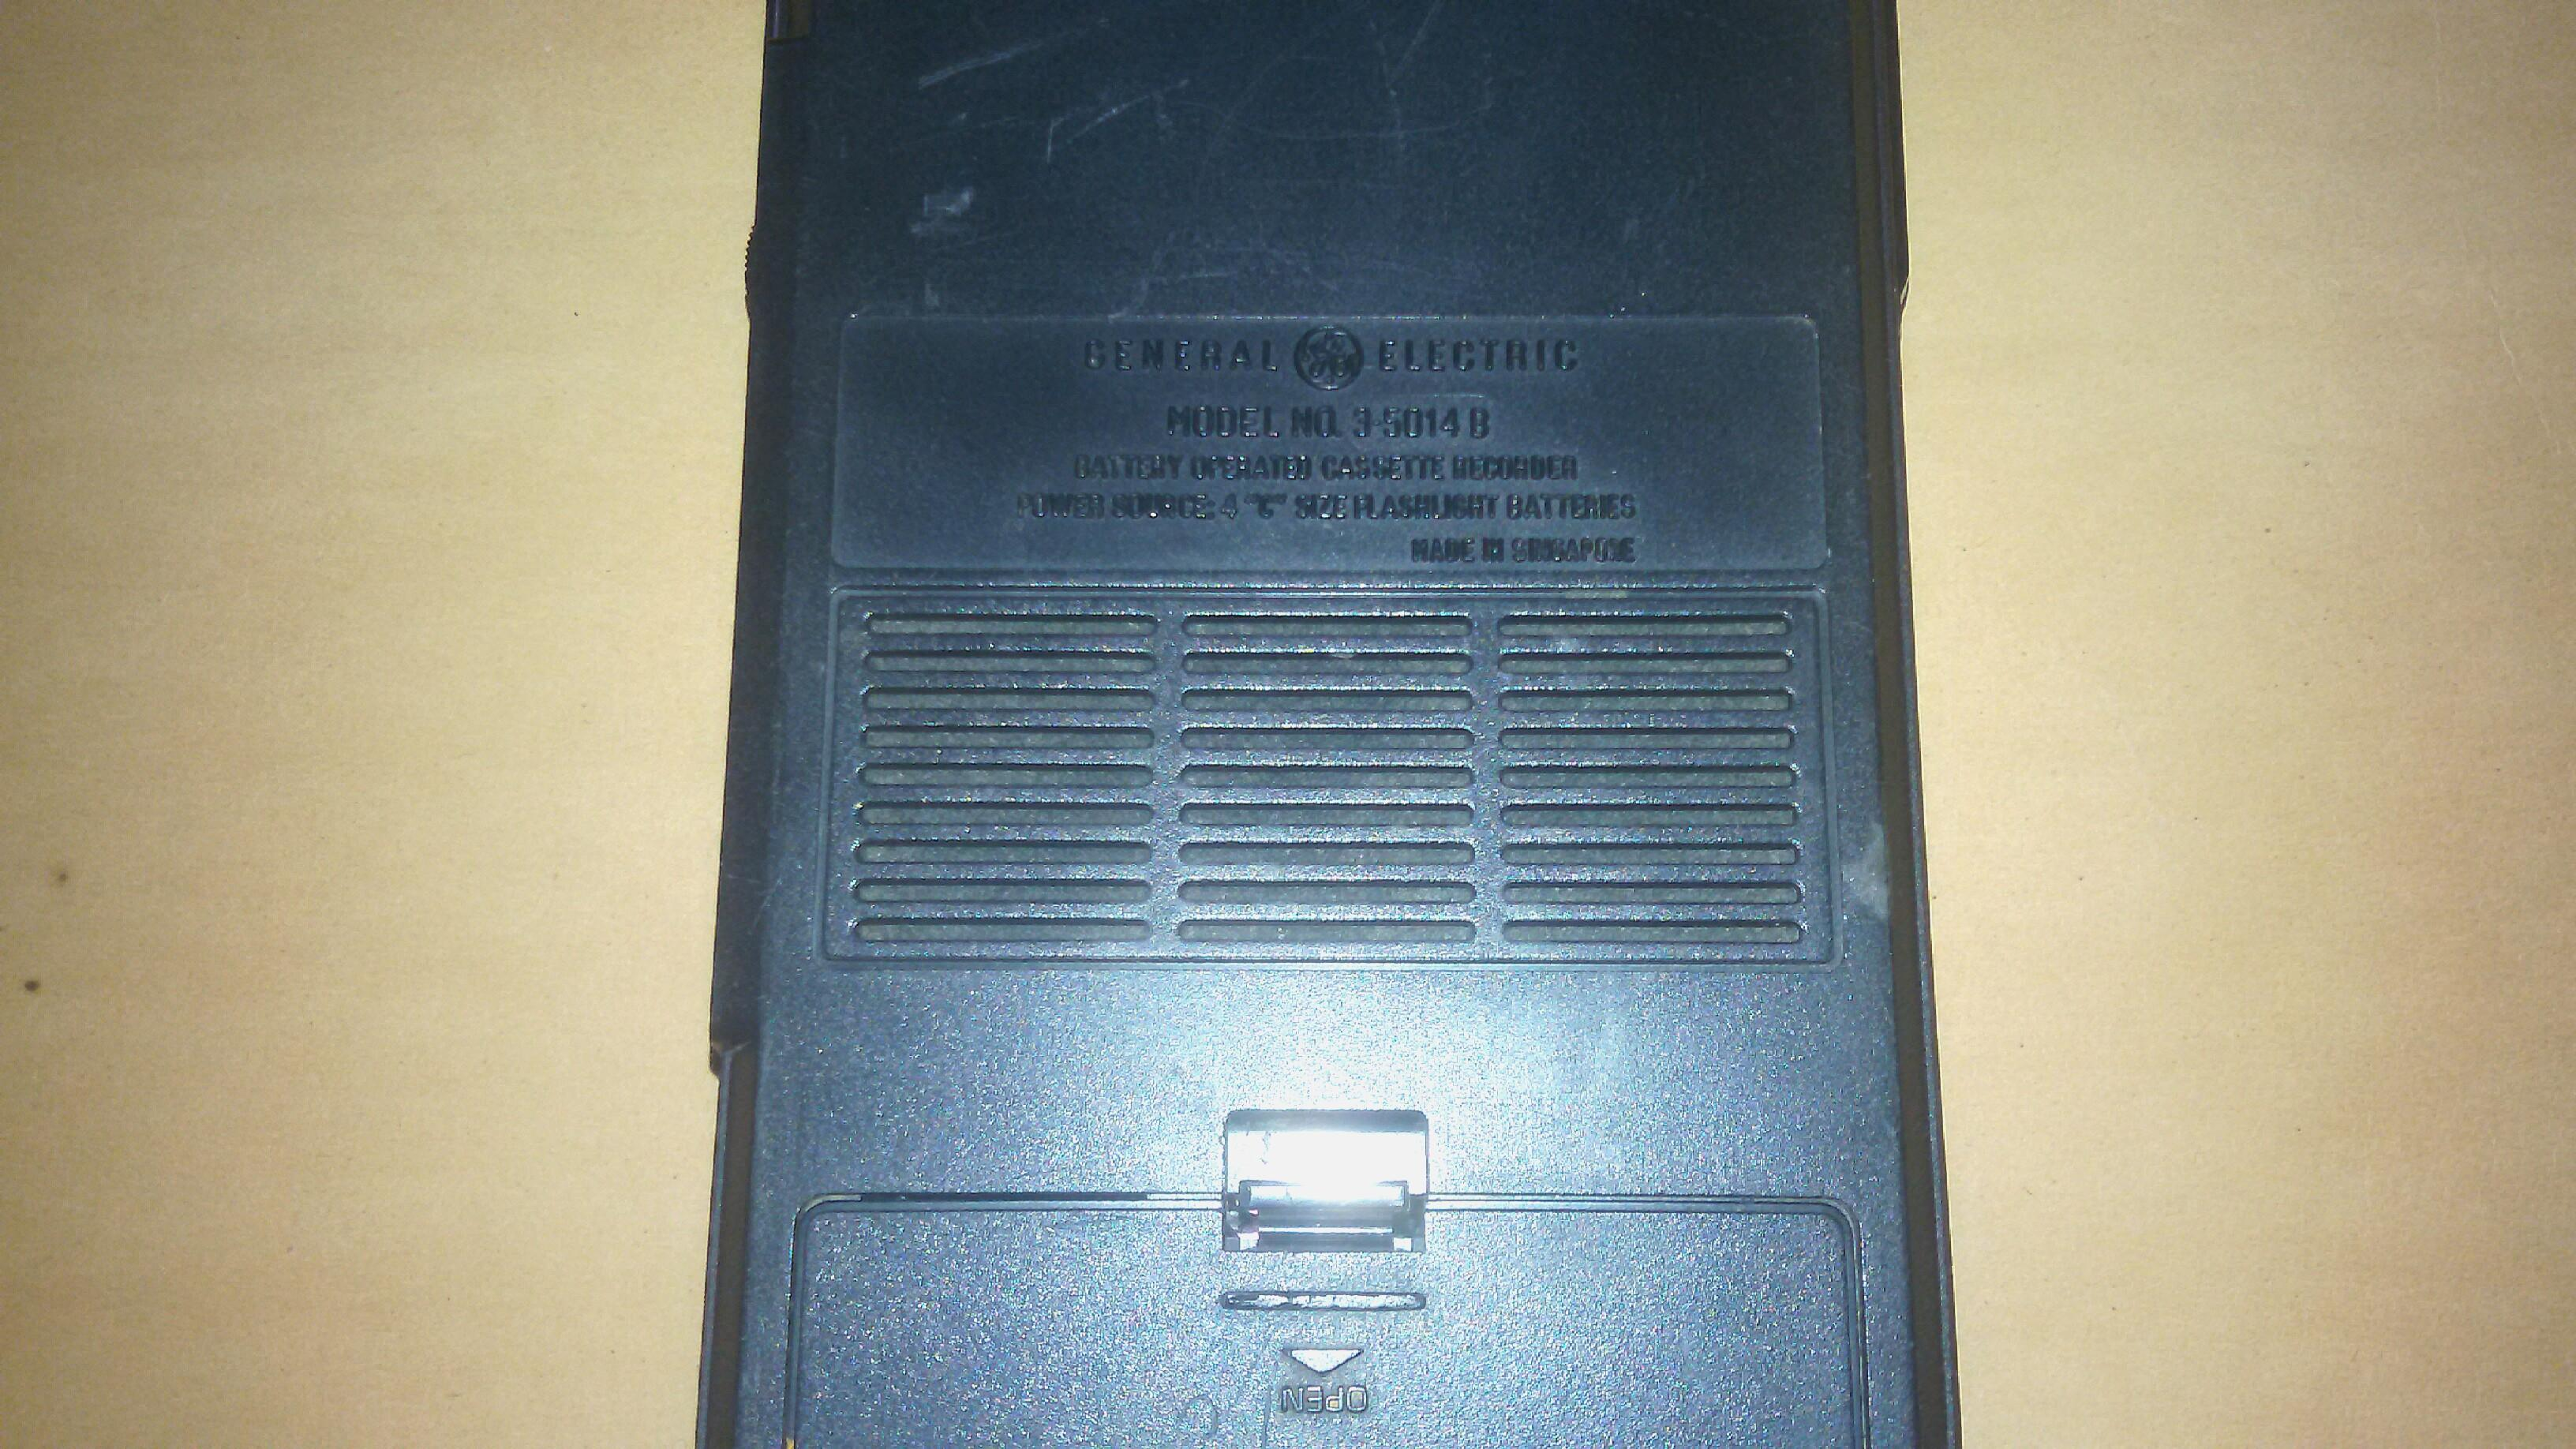 GENERAL ELECTRIC Cassette Recorder